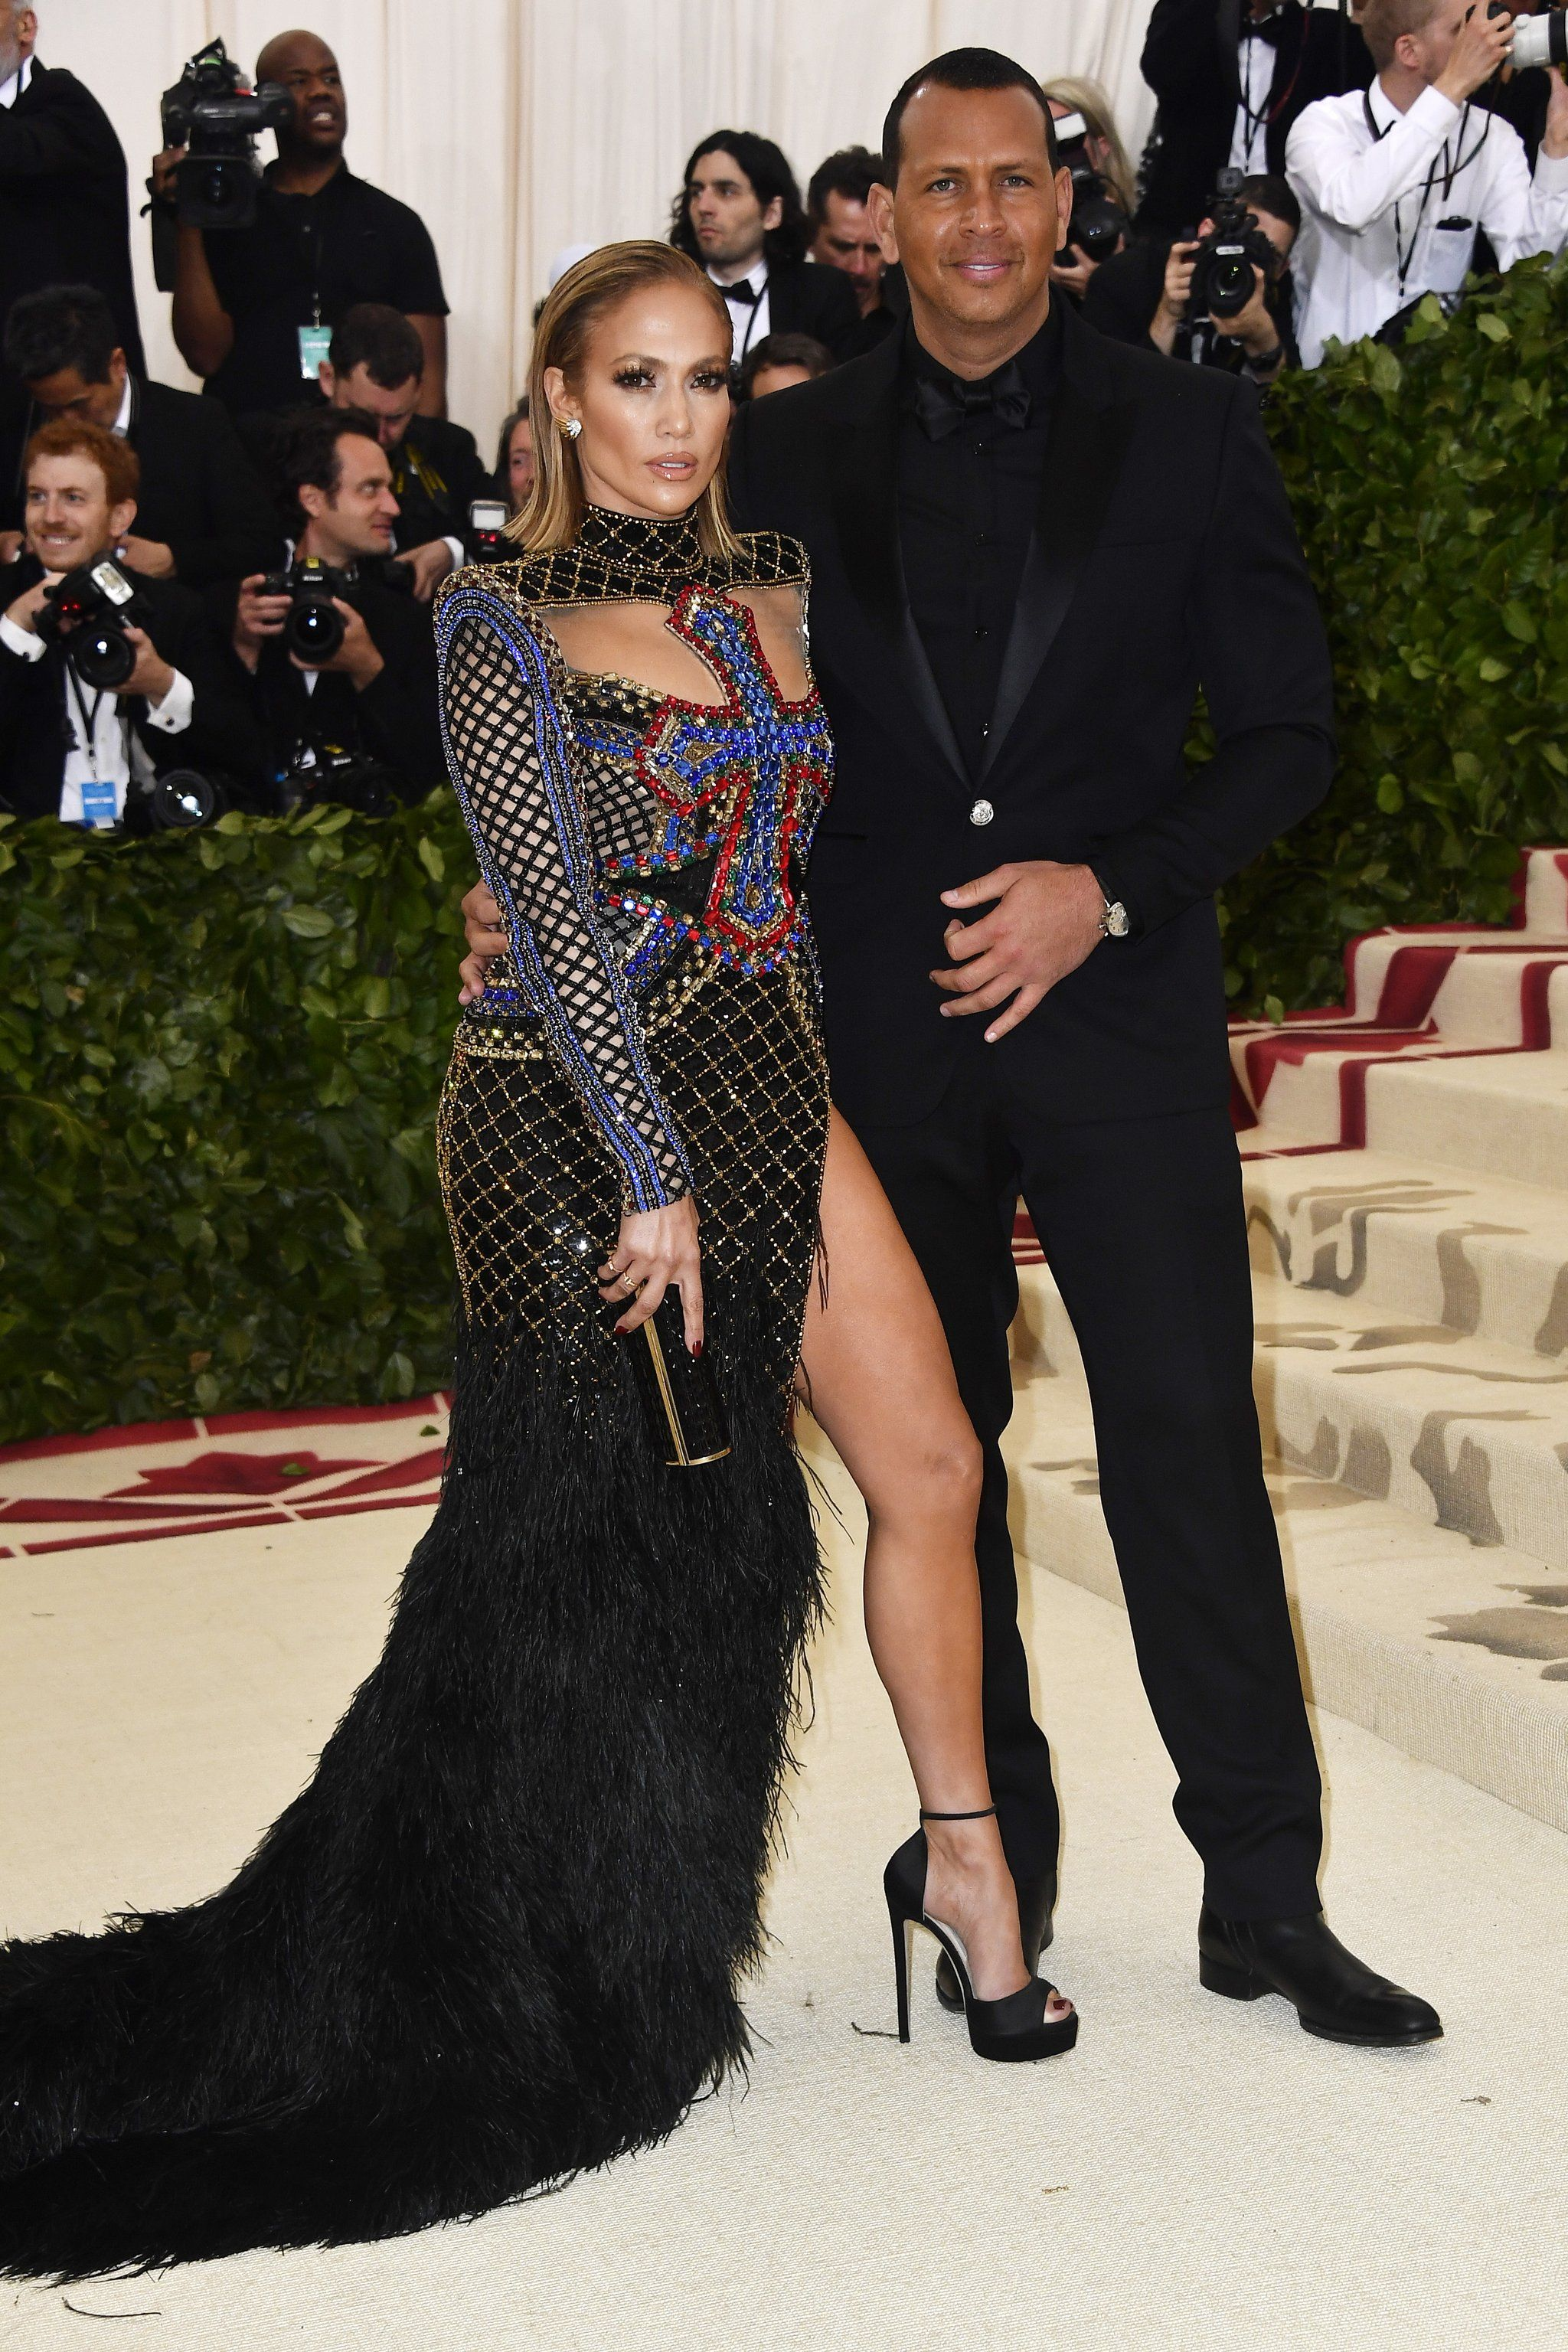 e3ac1e9c There's No Denying Jennifer Lopez and Alex Rodriguez's Look of Love at the Met  Gala